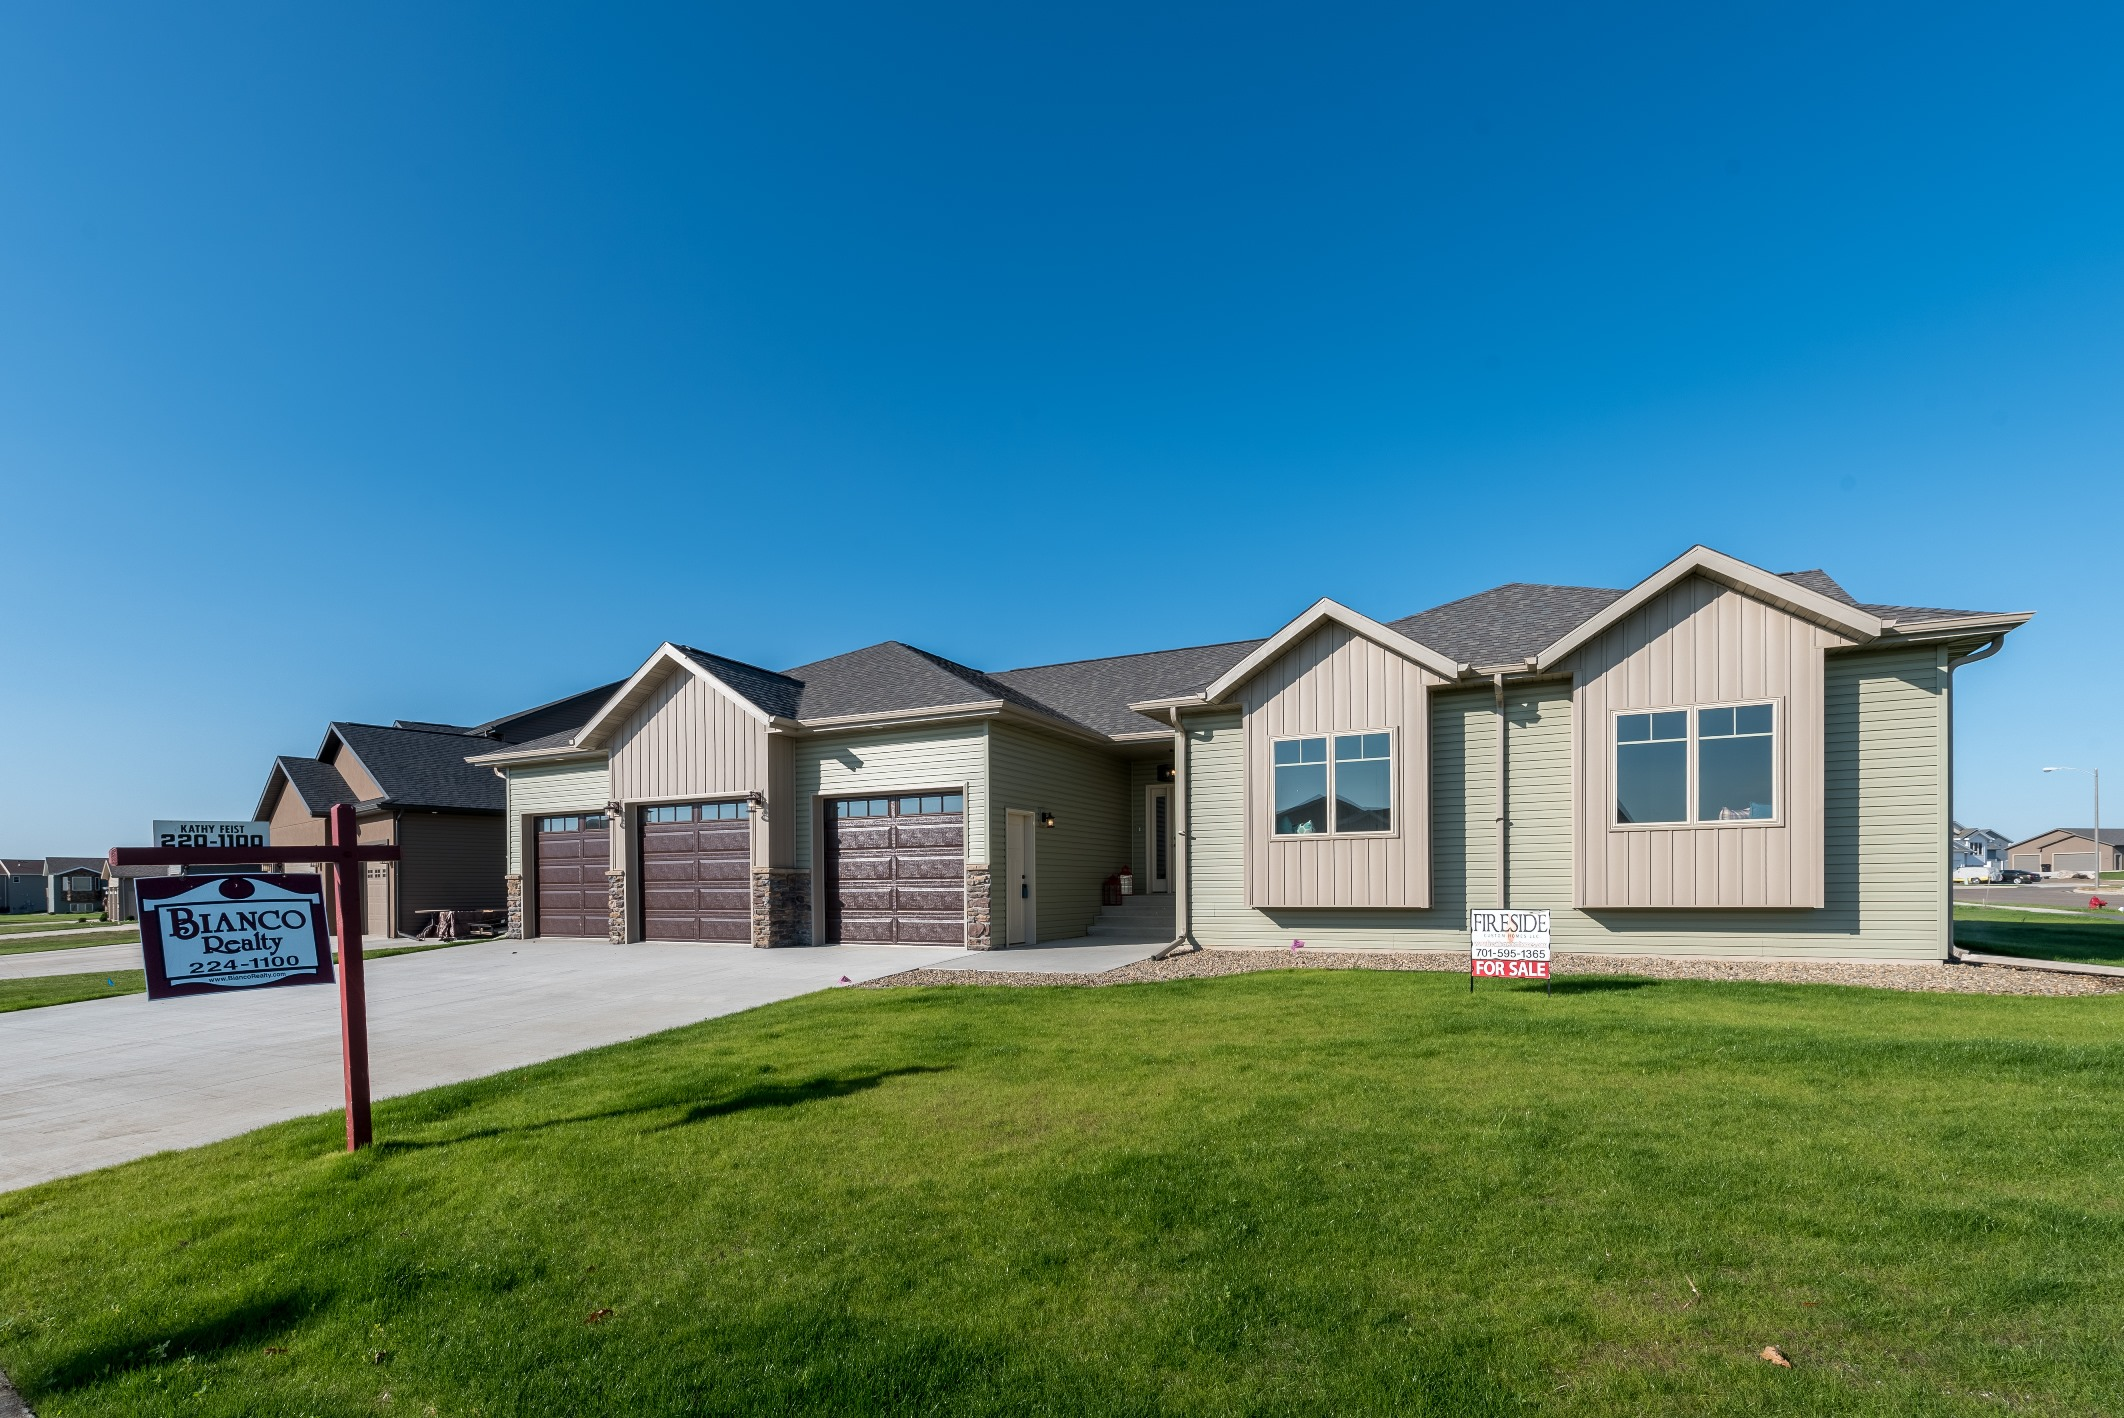 5208 Sunlight Drive, Bismarck, ND 58503